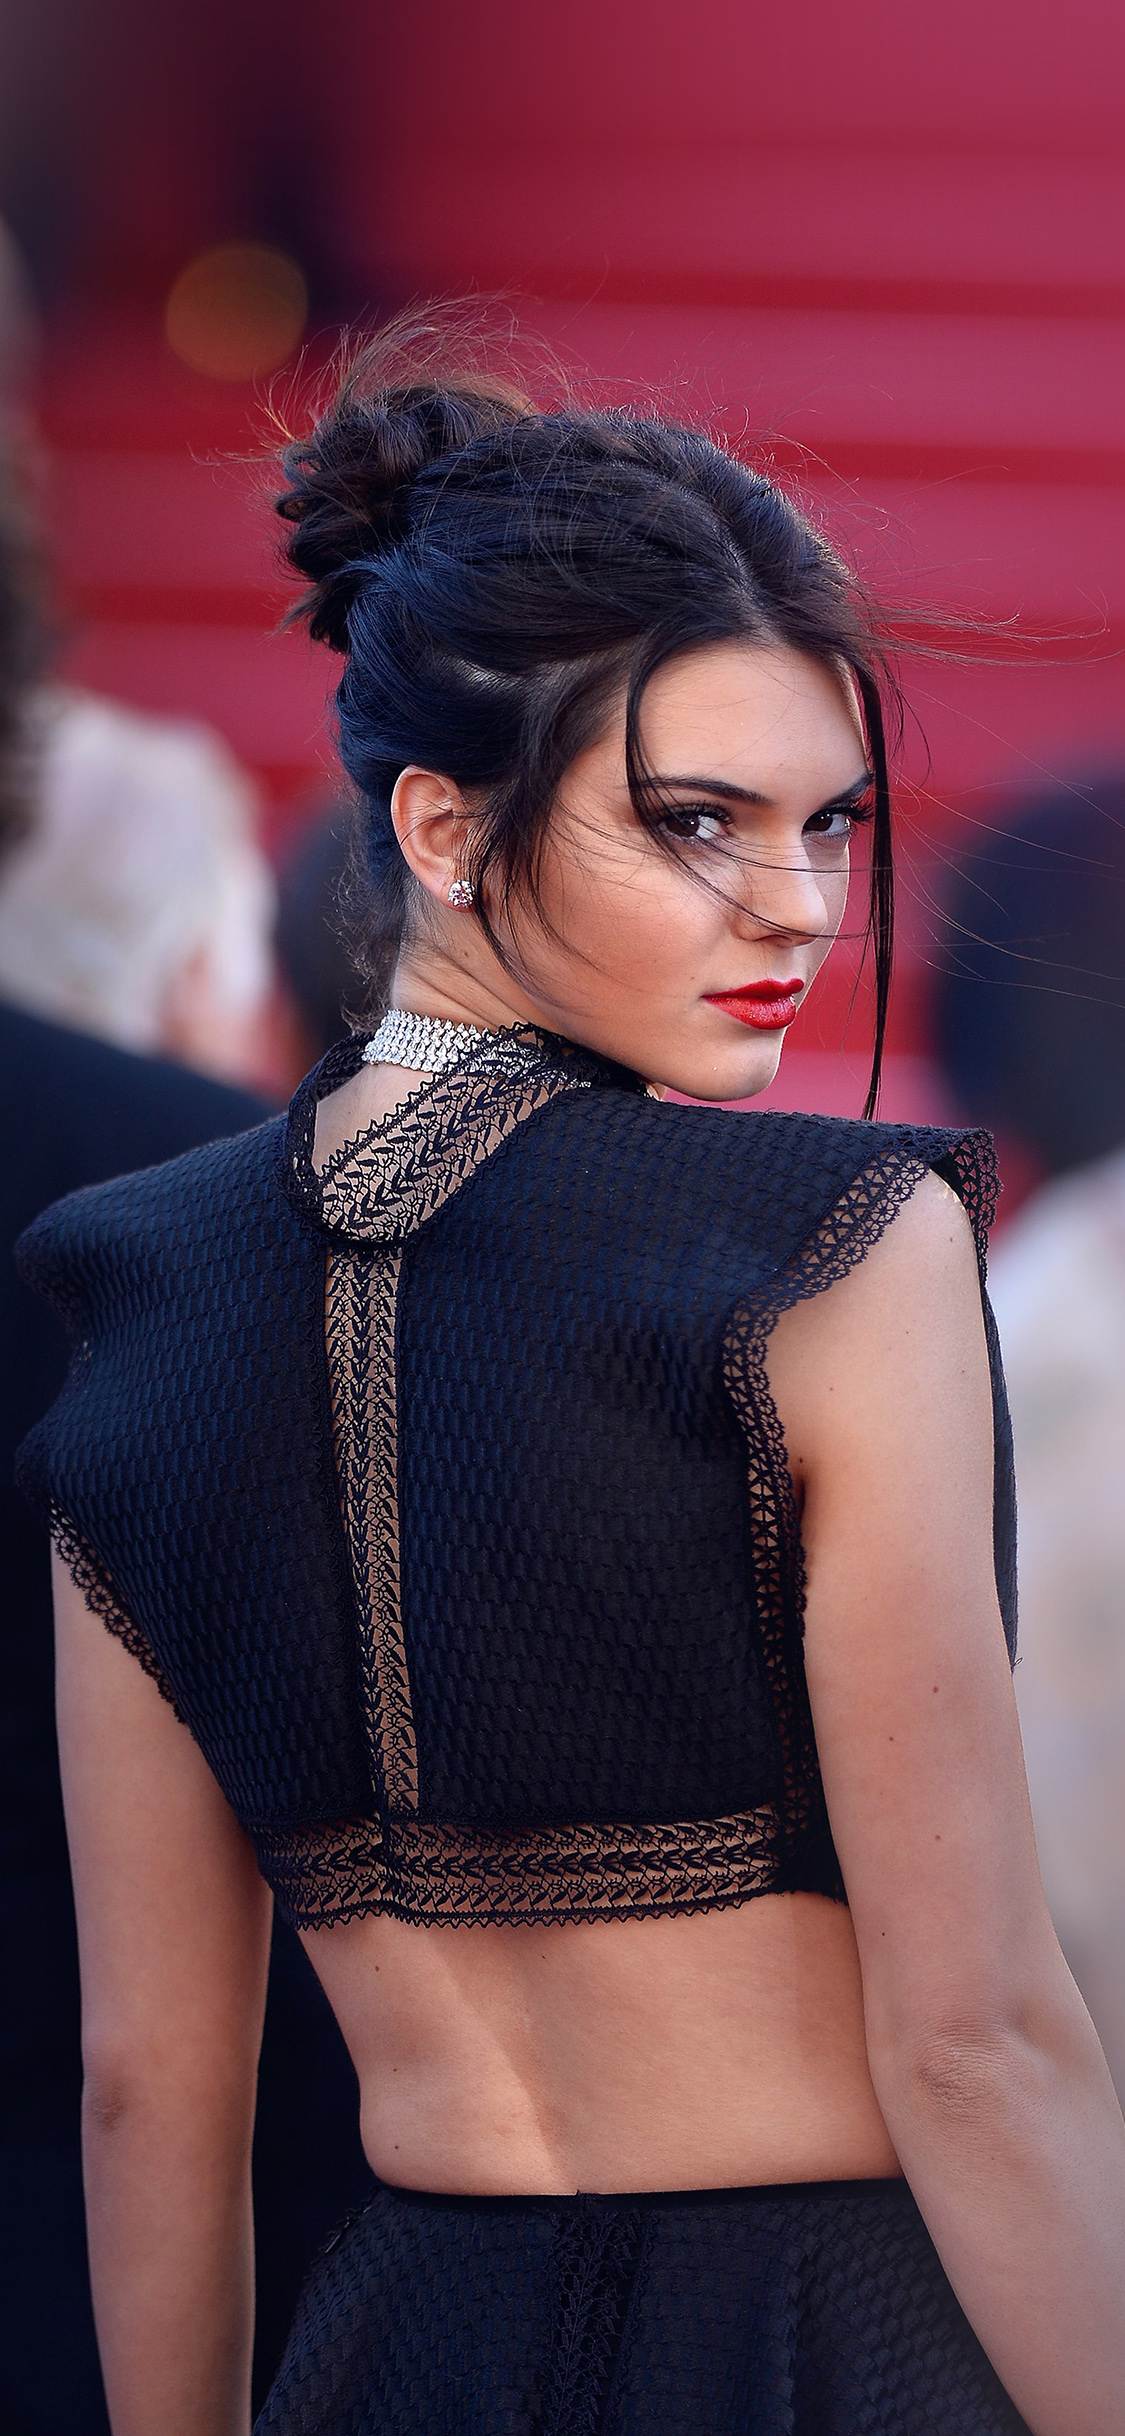 iPhoneXpapers.com-Apple-iPhone-wallpaper-hl97-kendall-jenner-red-celebrity